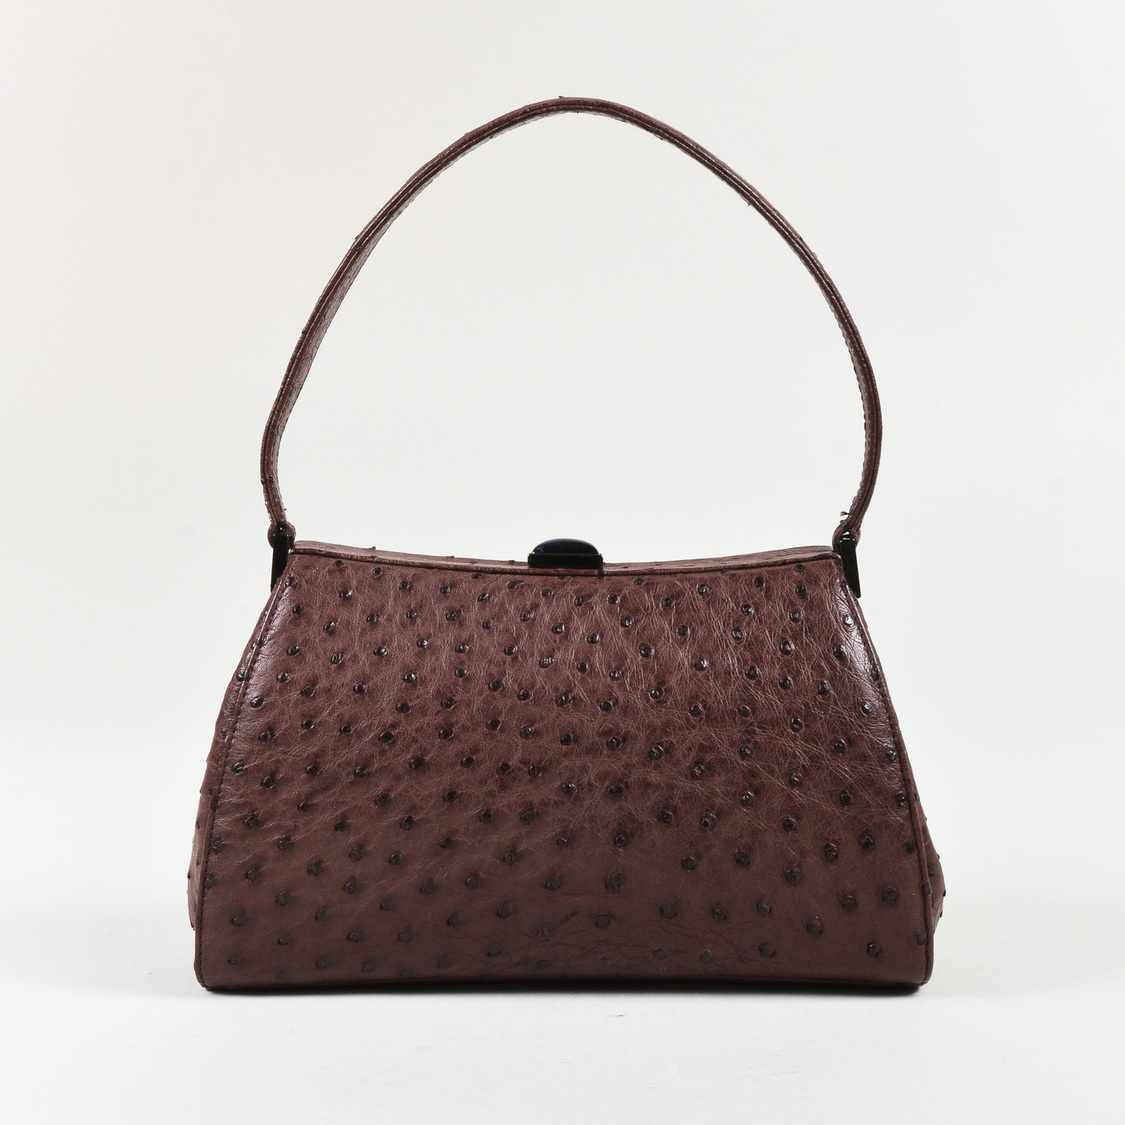 d084c909b41 Details about Giorgio Armani Purple Ostrich Skin Top Handle Frame Handbag